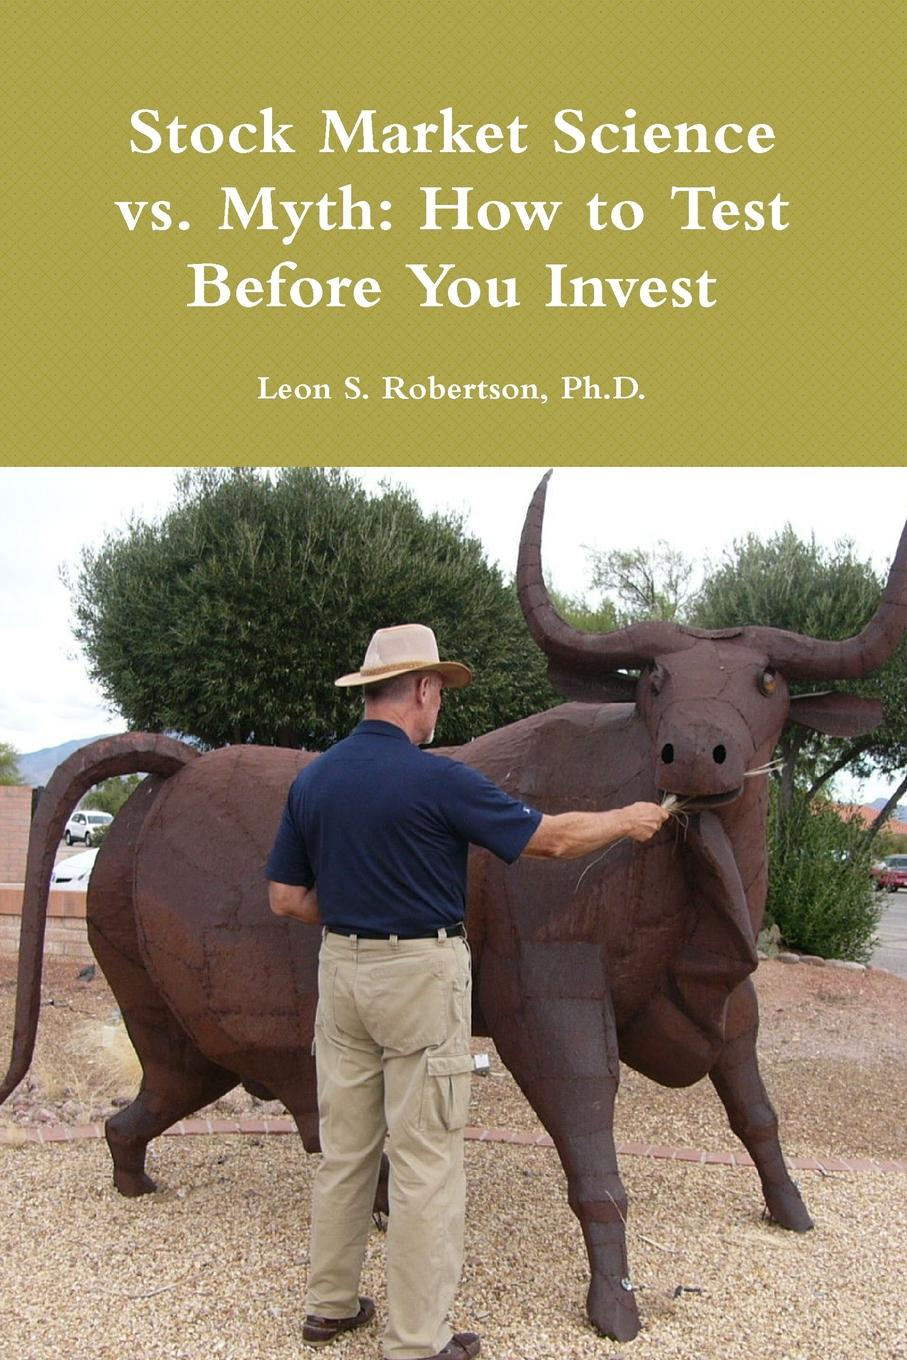 Stock Market Science vs. Myth. How to Test Before You Invest Many popular stock-trading rules of thumb and trading systems tested...